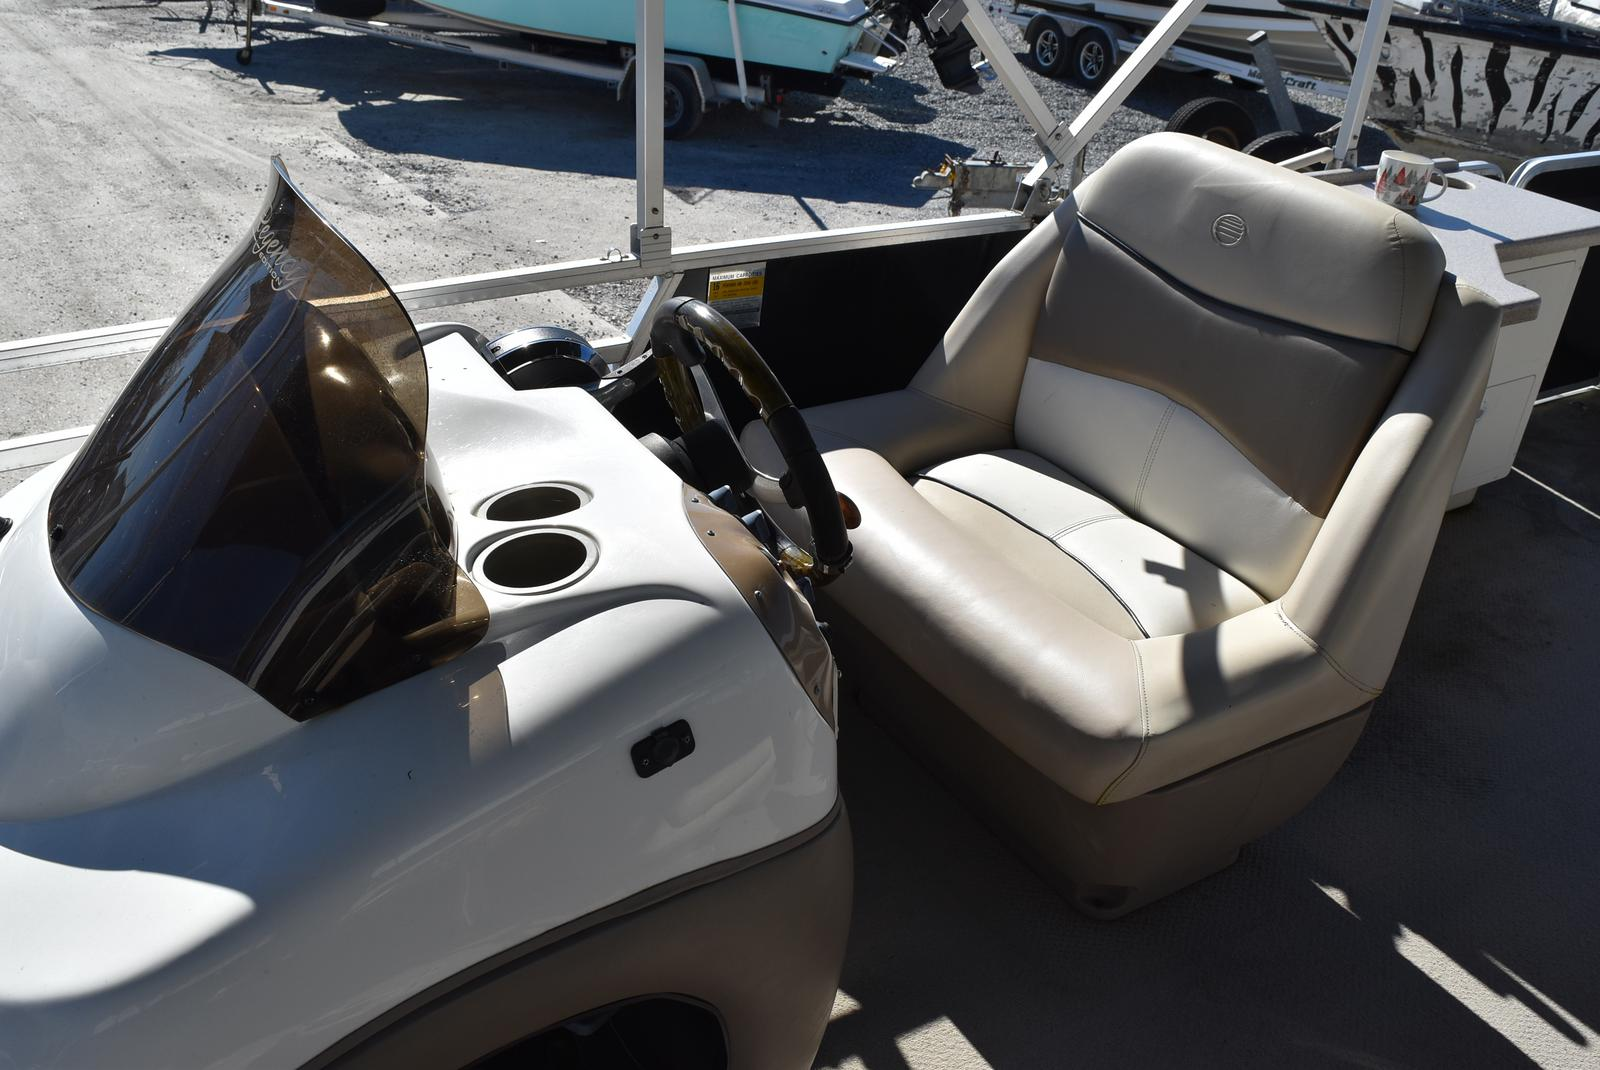 2001 Regency boat for sale, model of the boat is 27 Party Barge & Image # 9 of 12